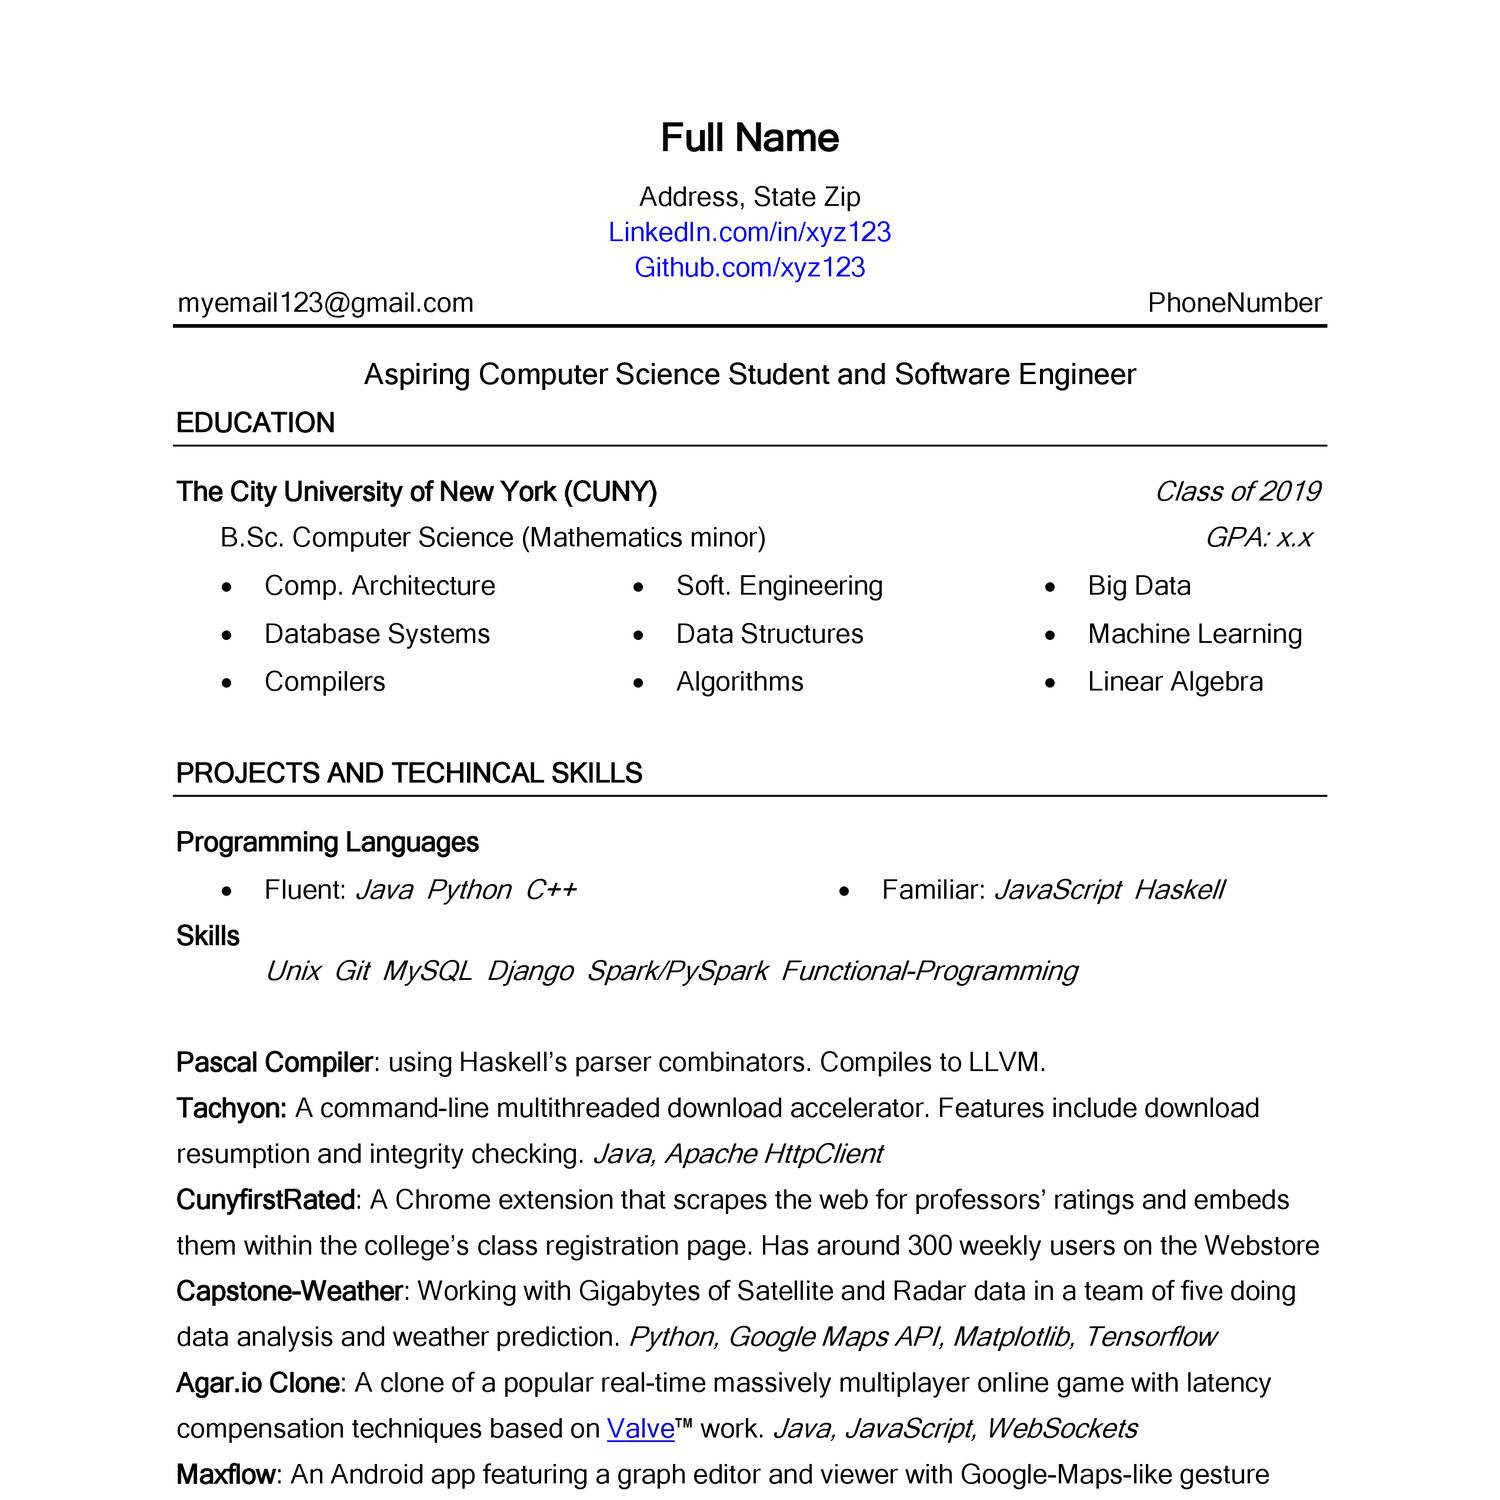 Anonymized pdf   DocDroid